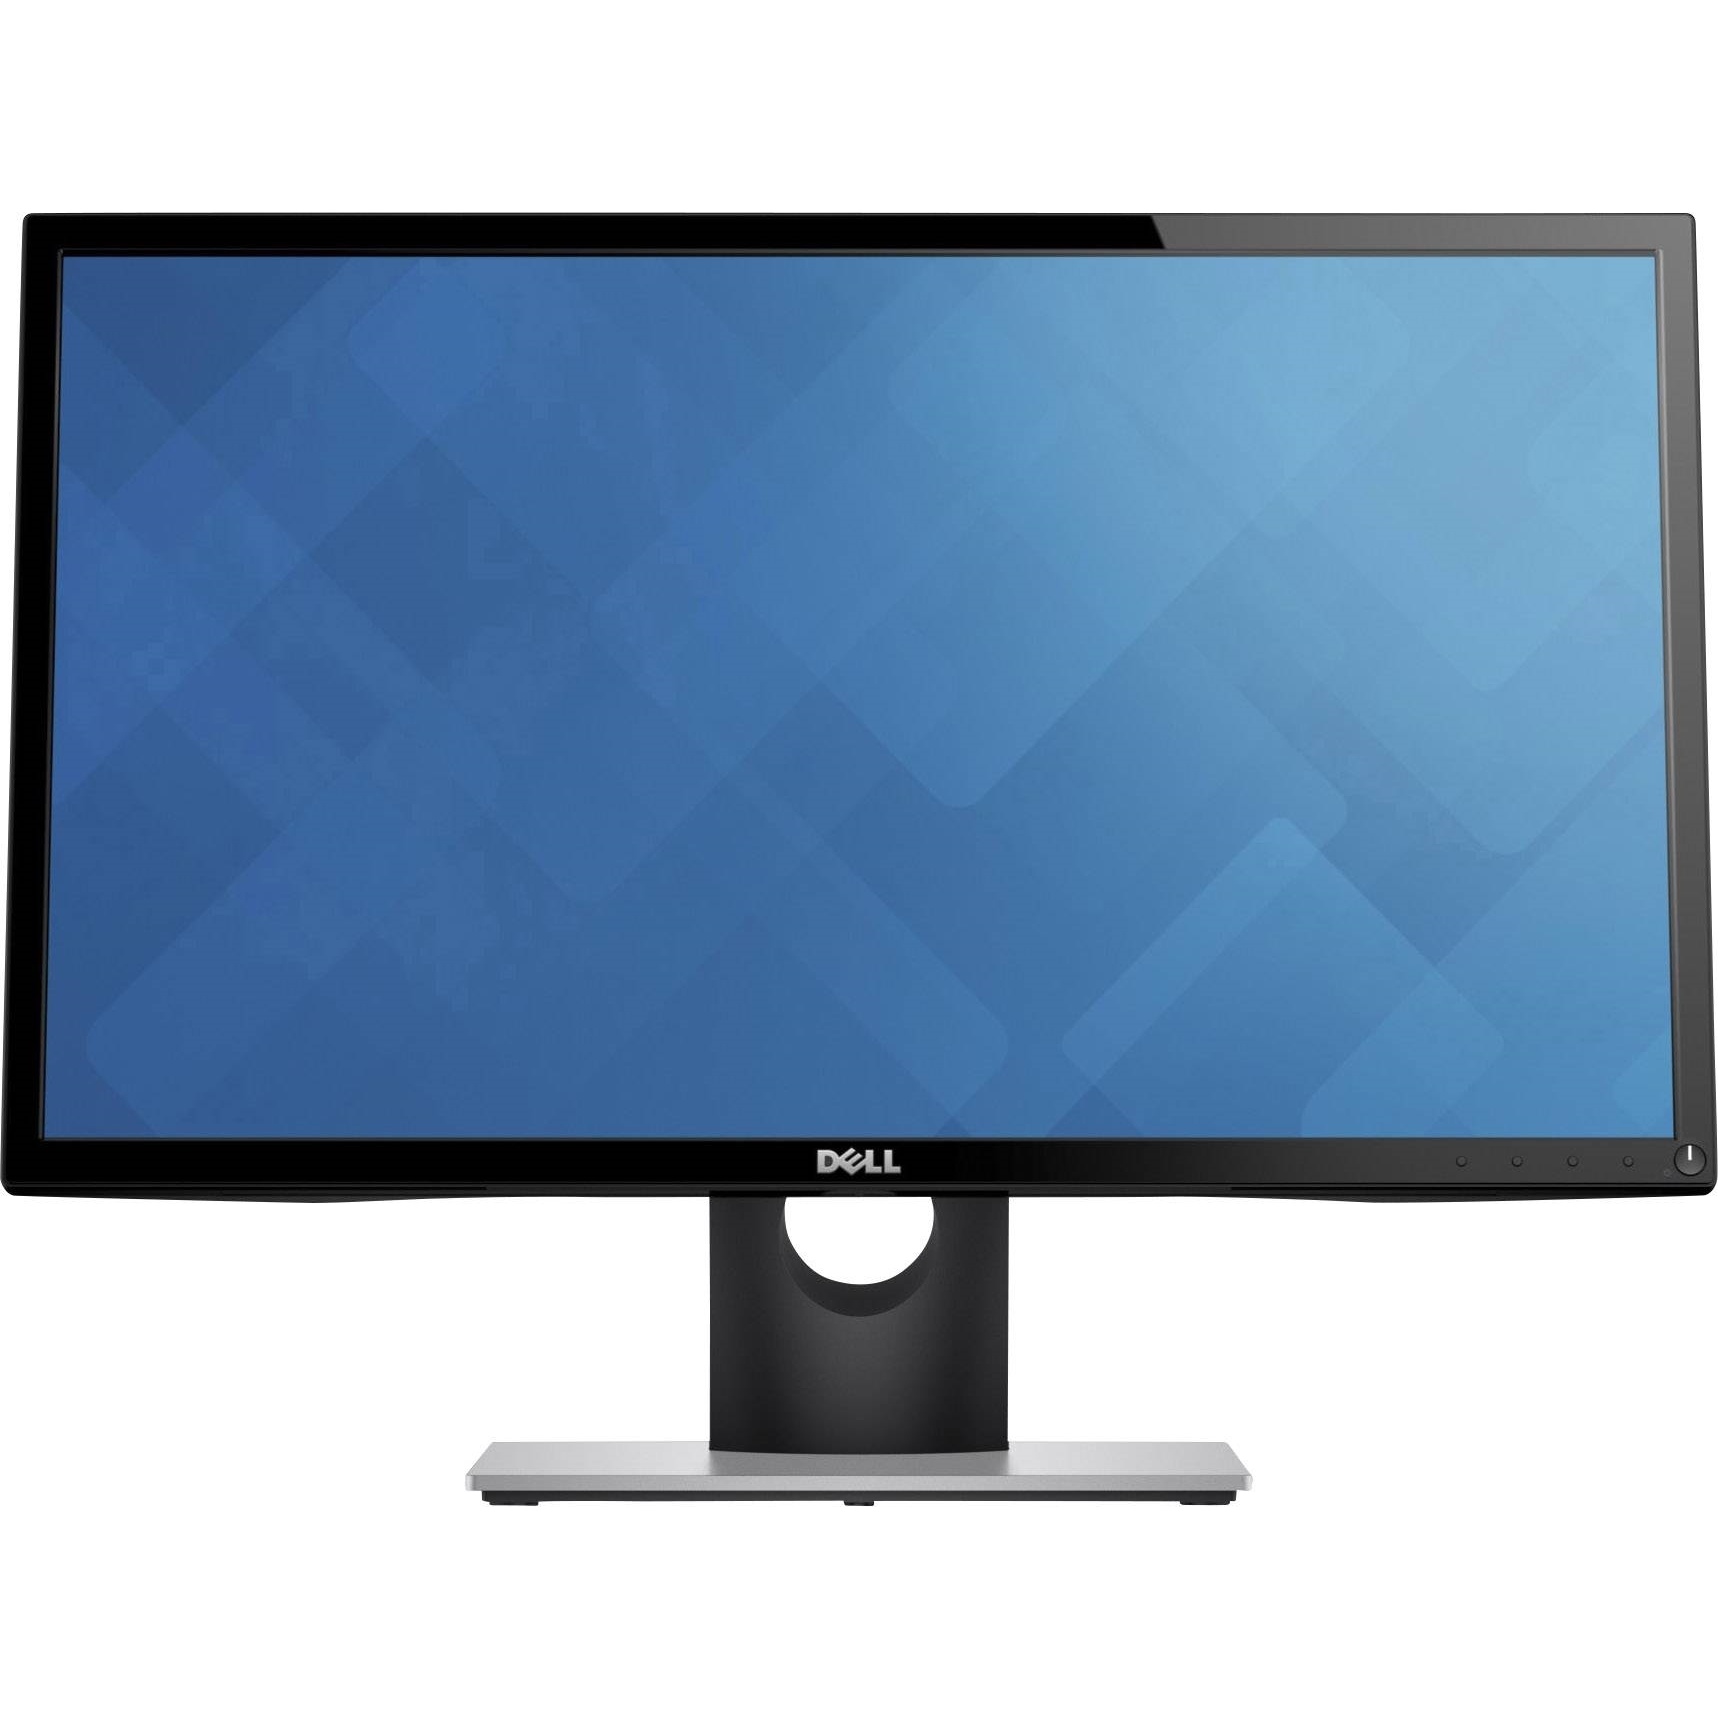 "DELL SE2216H 21.5"" 5MS 1920x1080 VGA/HDMI VESA SİYAH LED MONITOR"